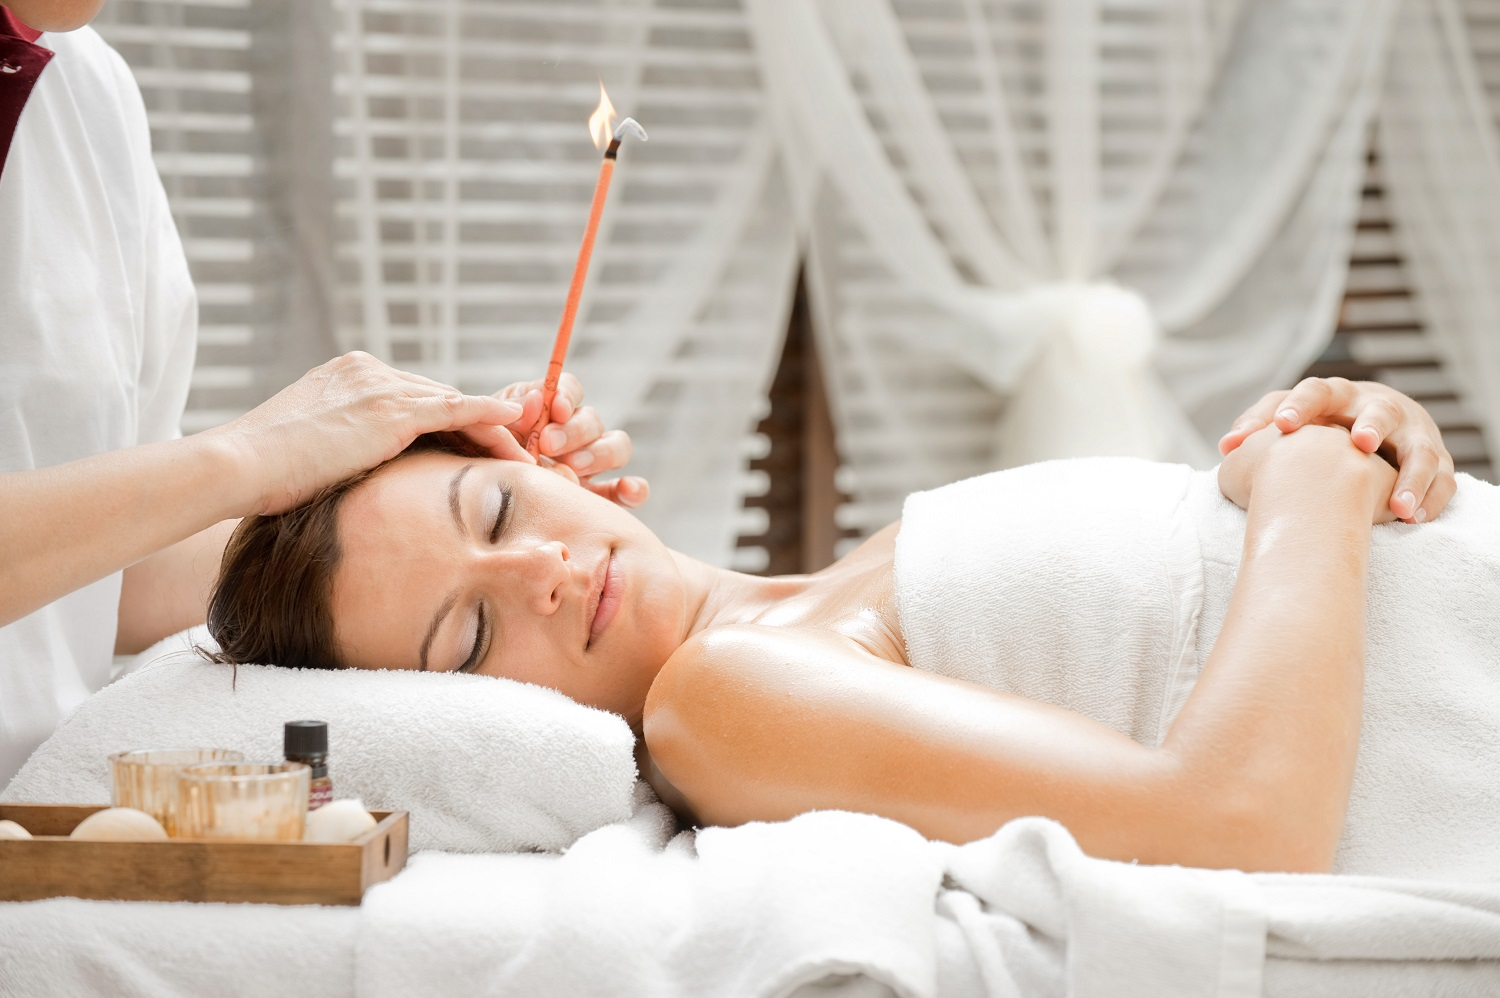 How much for ear candling?